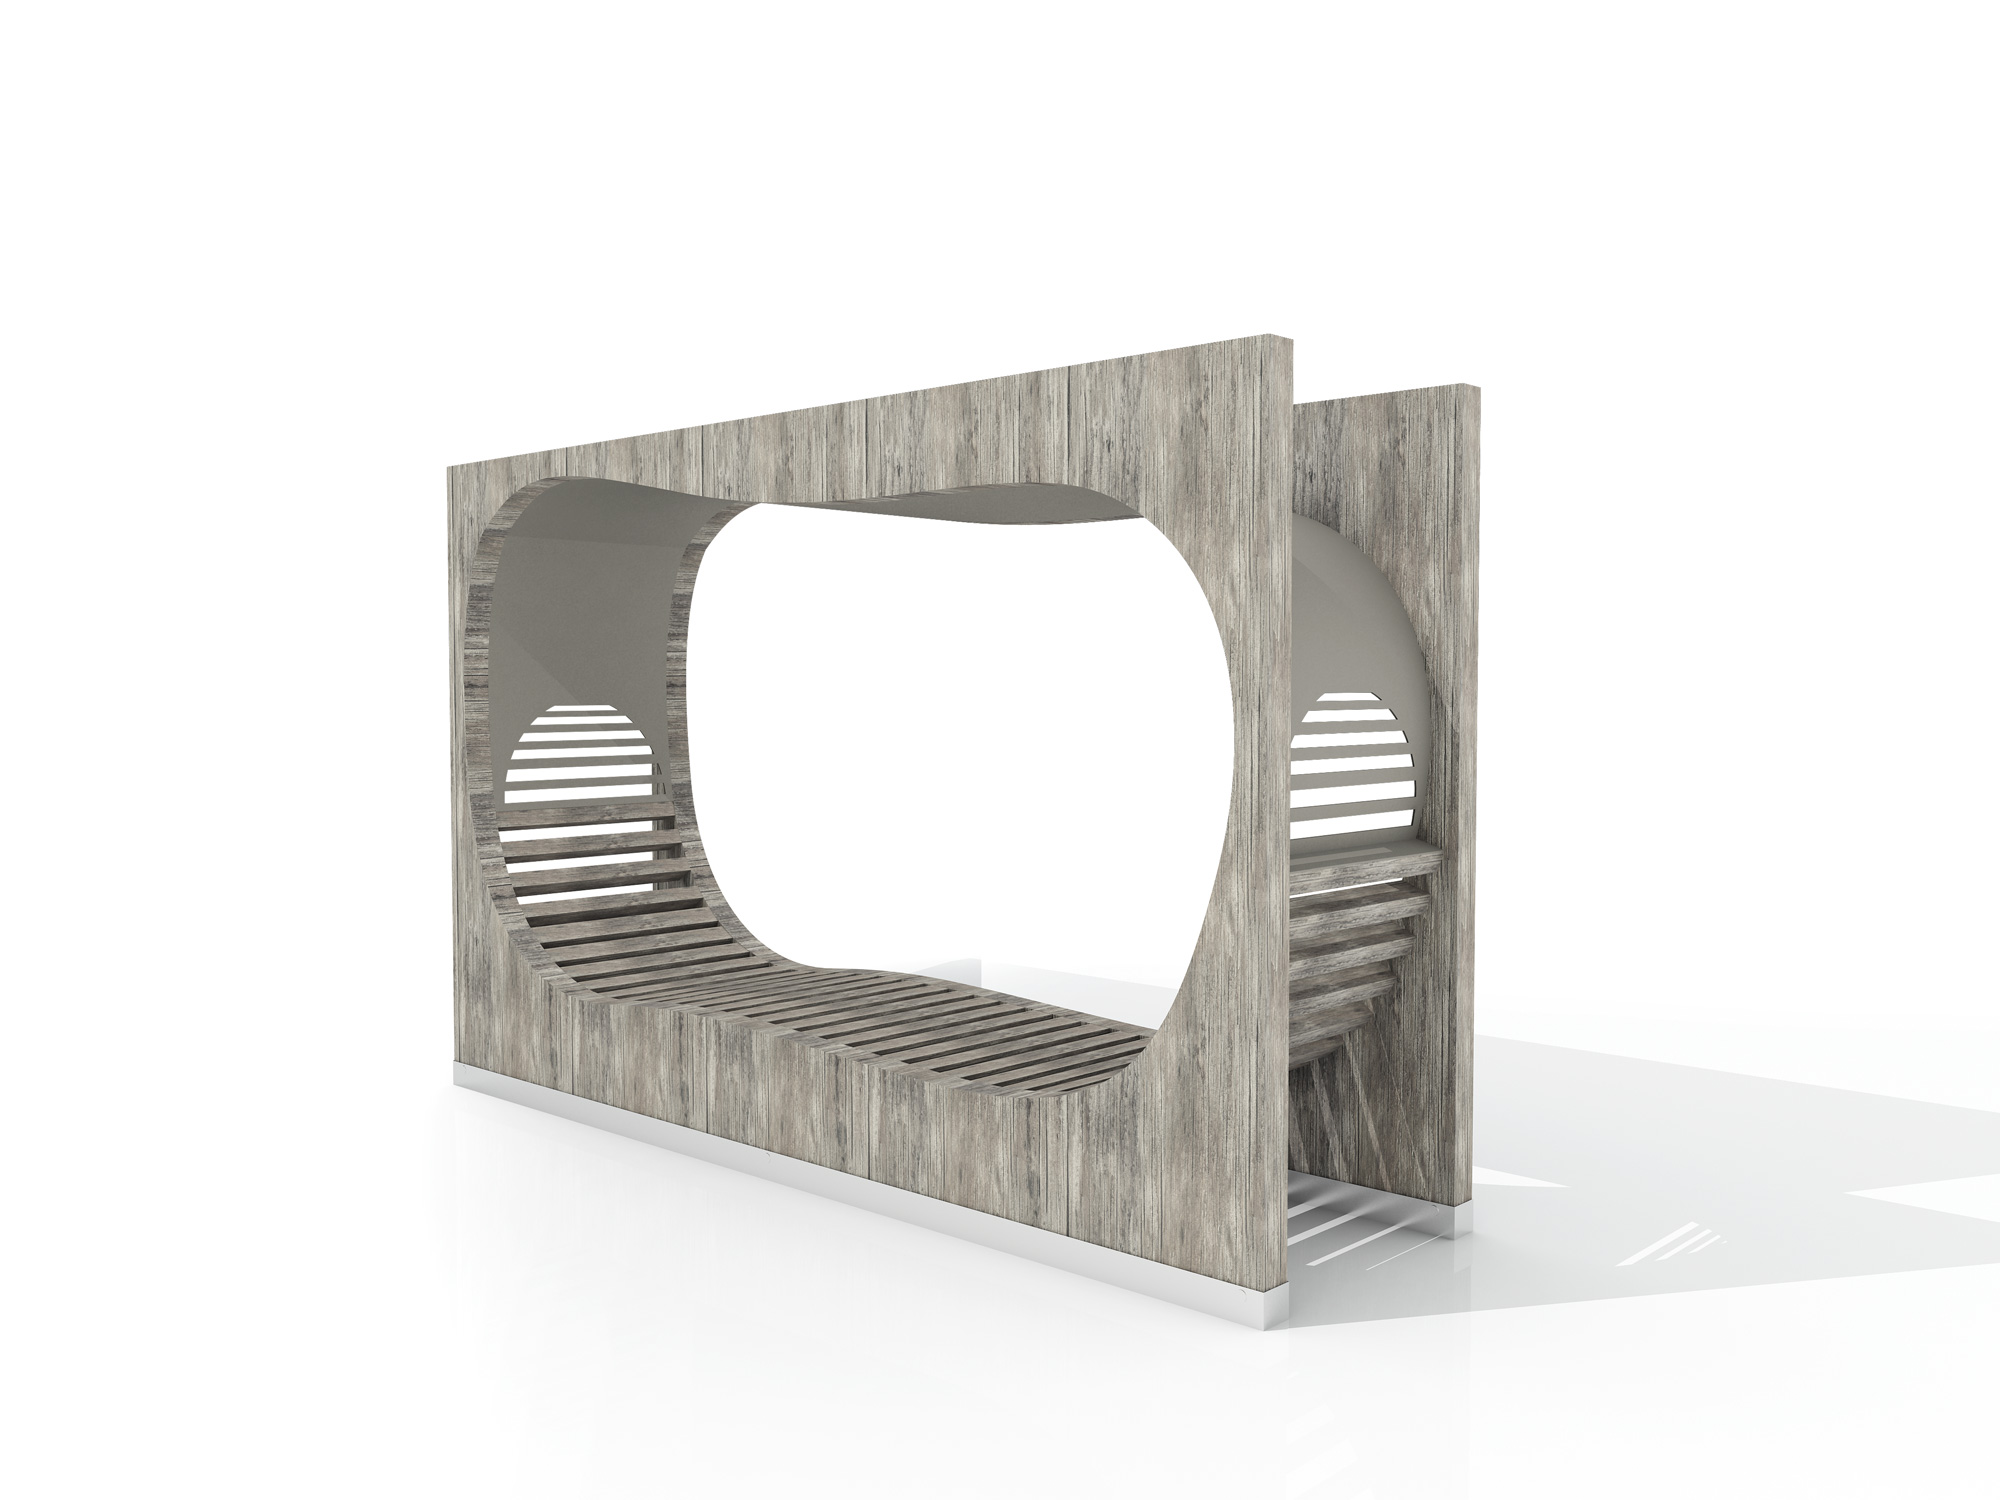 Strates bench by Stephane Chapelet for LAB23